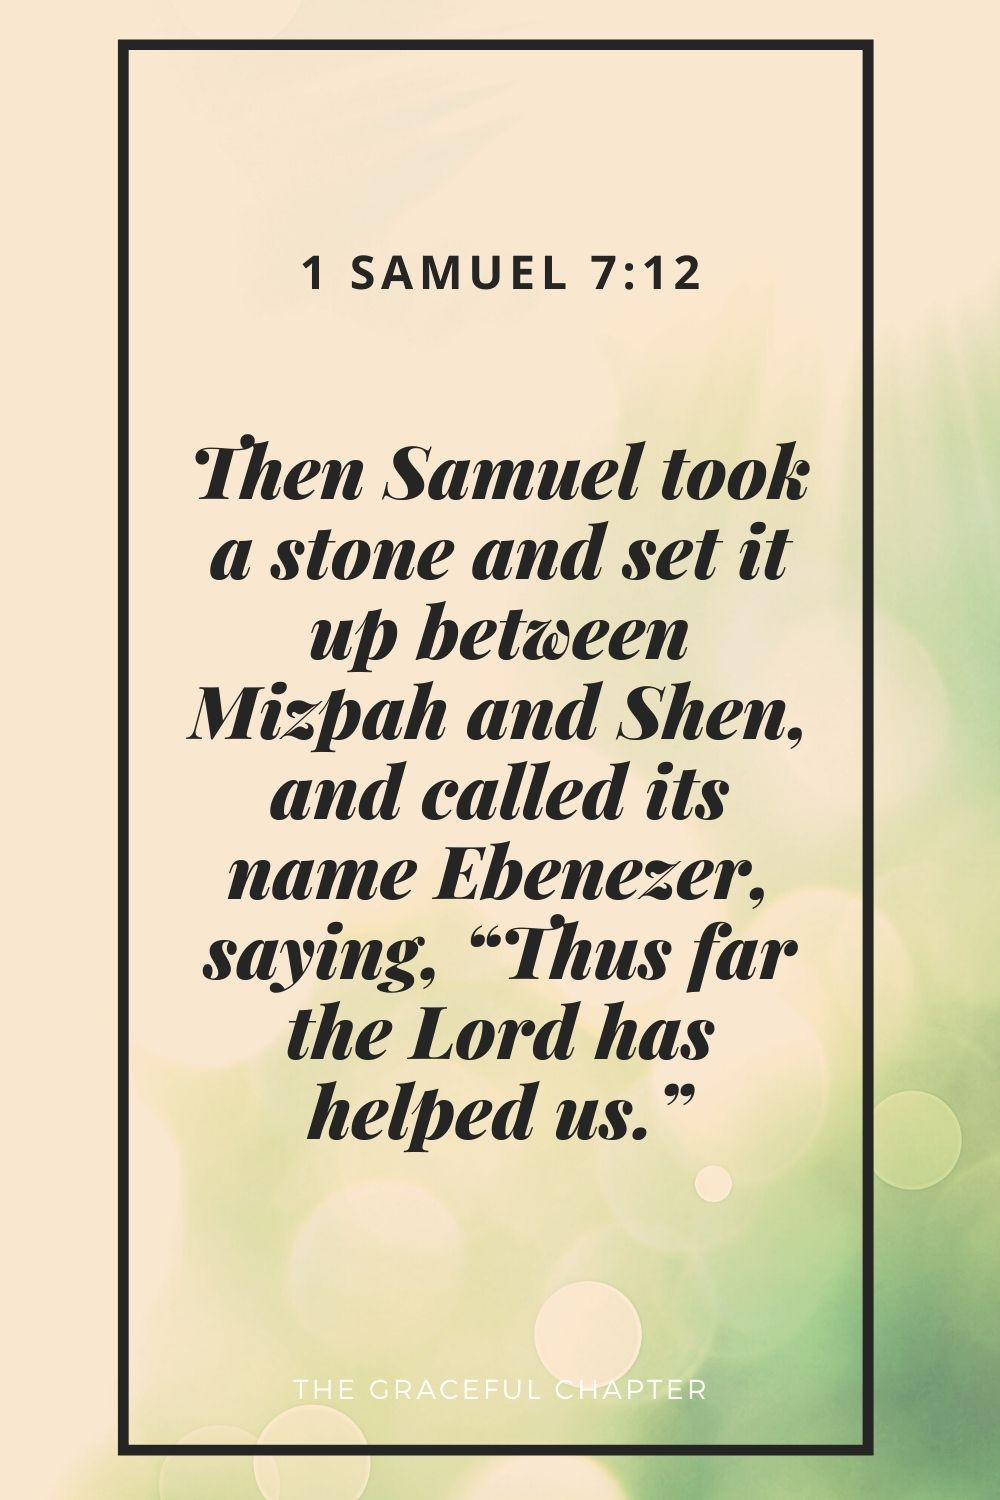 """Then Samuel took a stone and set it up between Mizpah and Shen, and called its name Ebenezer, saying, """"Thus far the Lord has helped us."""" 1 Samuel 7:12"""